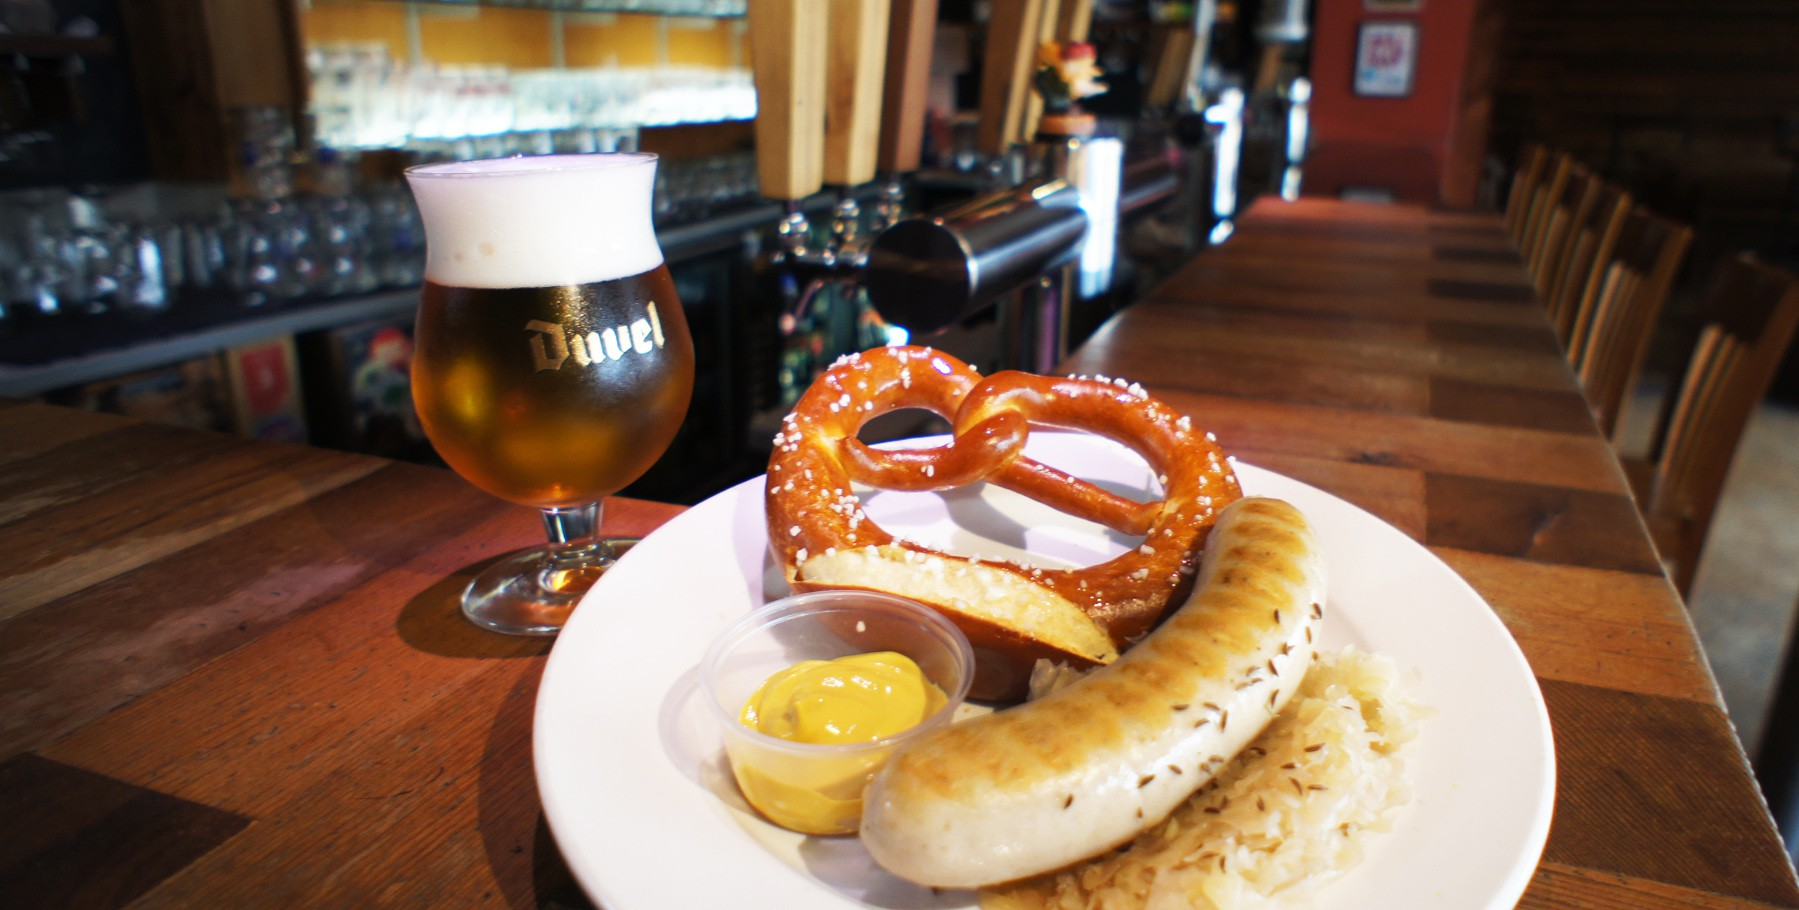 Indie's Bratwurst and Beer